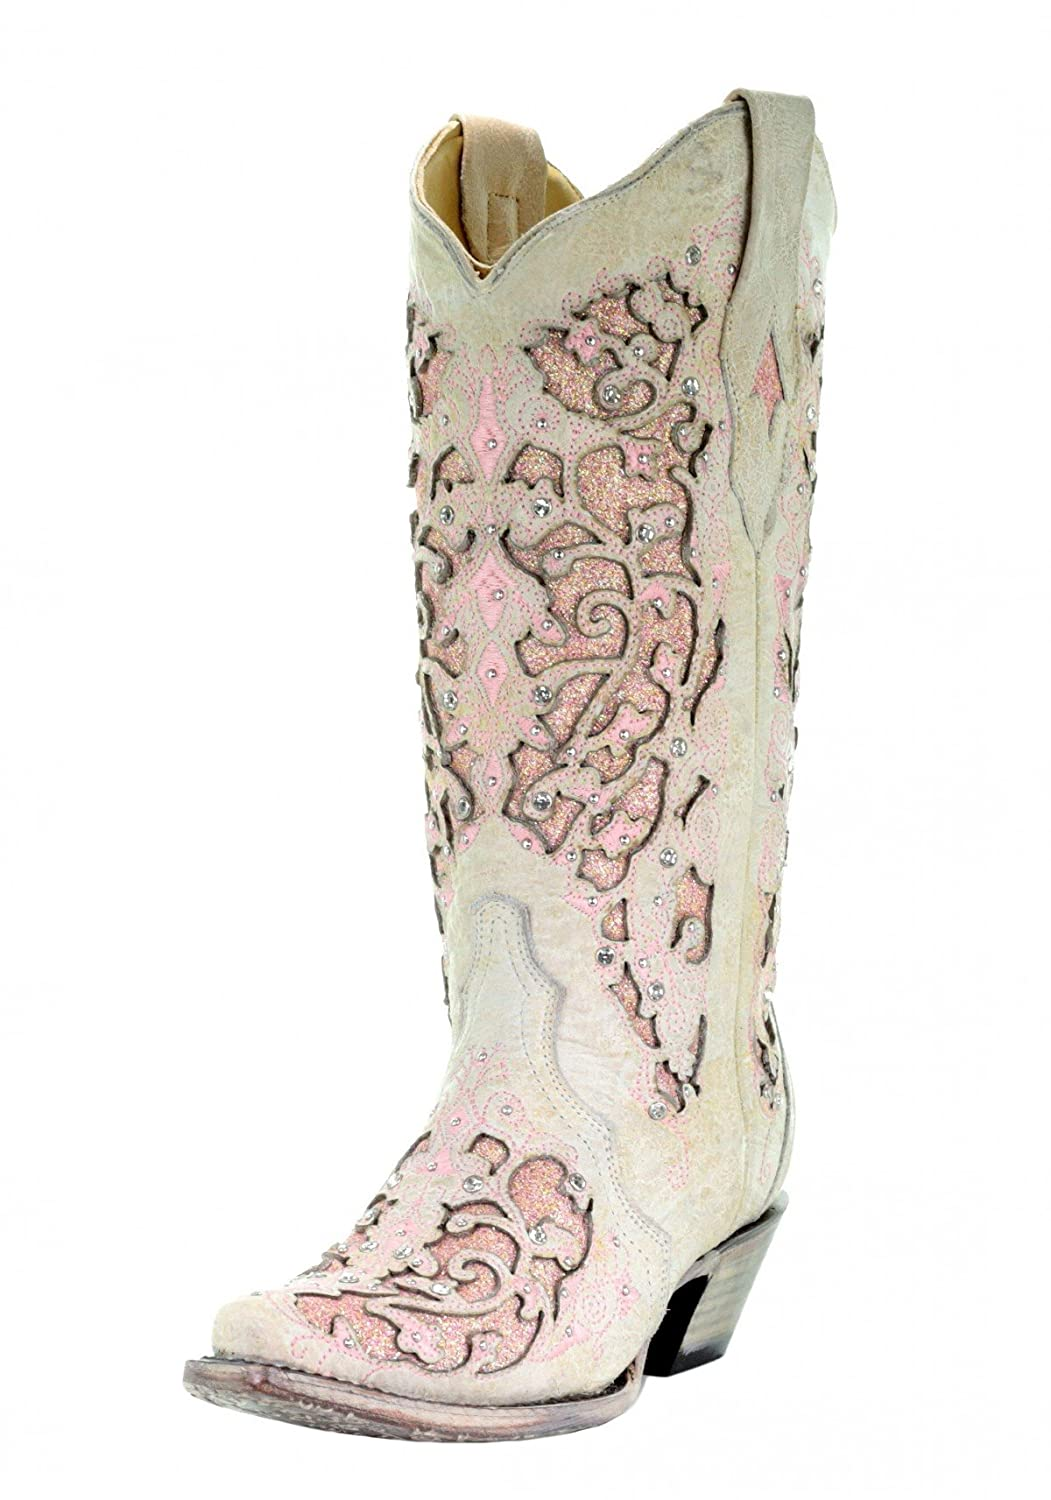 CORRAL A3587 White Pink Leather Glitter Inlay Boot with Crystals B07C2MCFCR 11 B(M) US